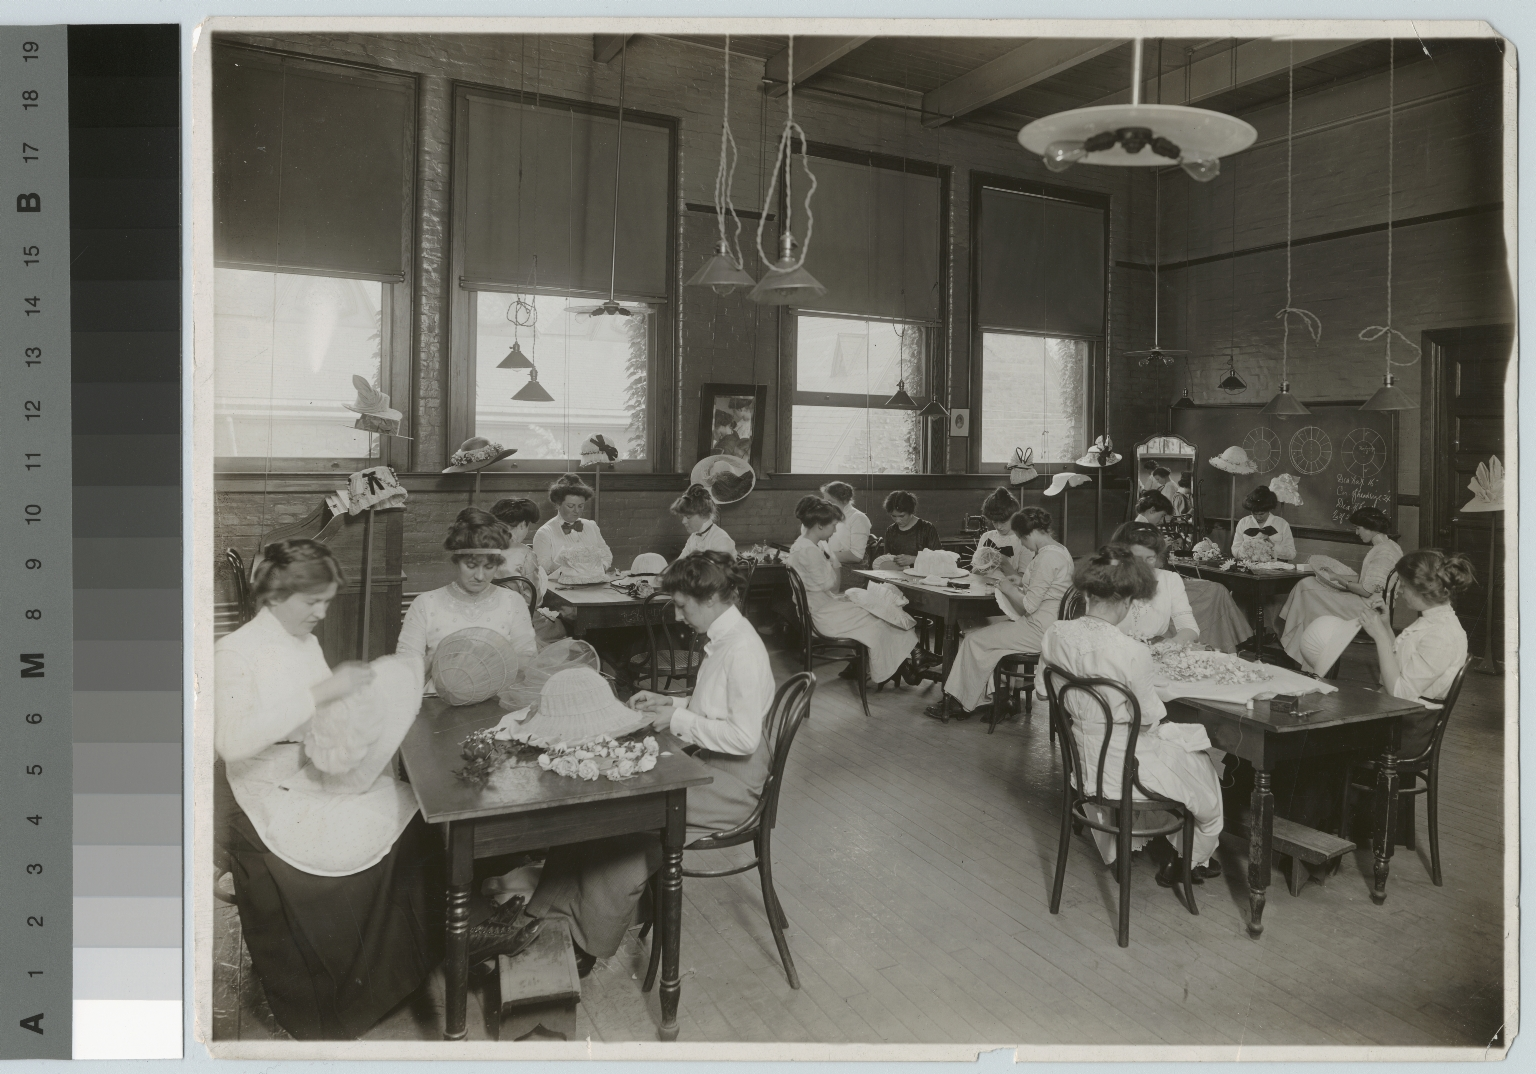 Millinery class, Department of Domestic Science and Art, Rochester Athenaeum and Mechanics Institute [1900-1915]